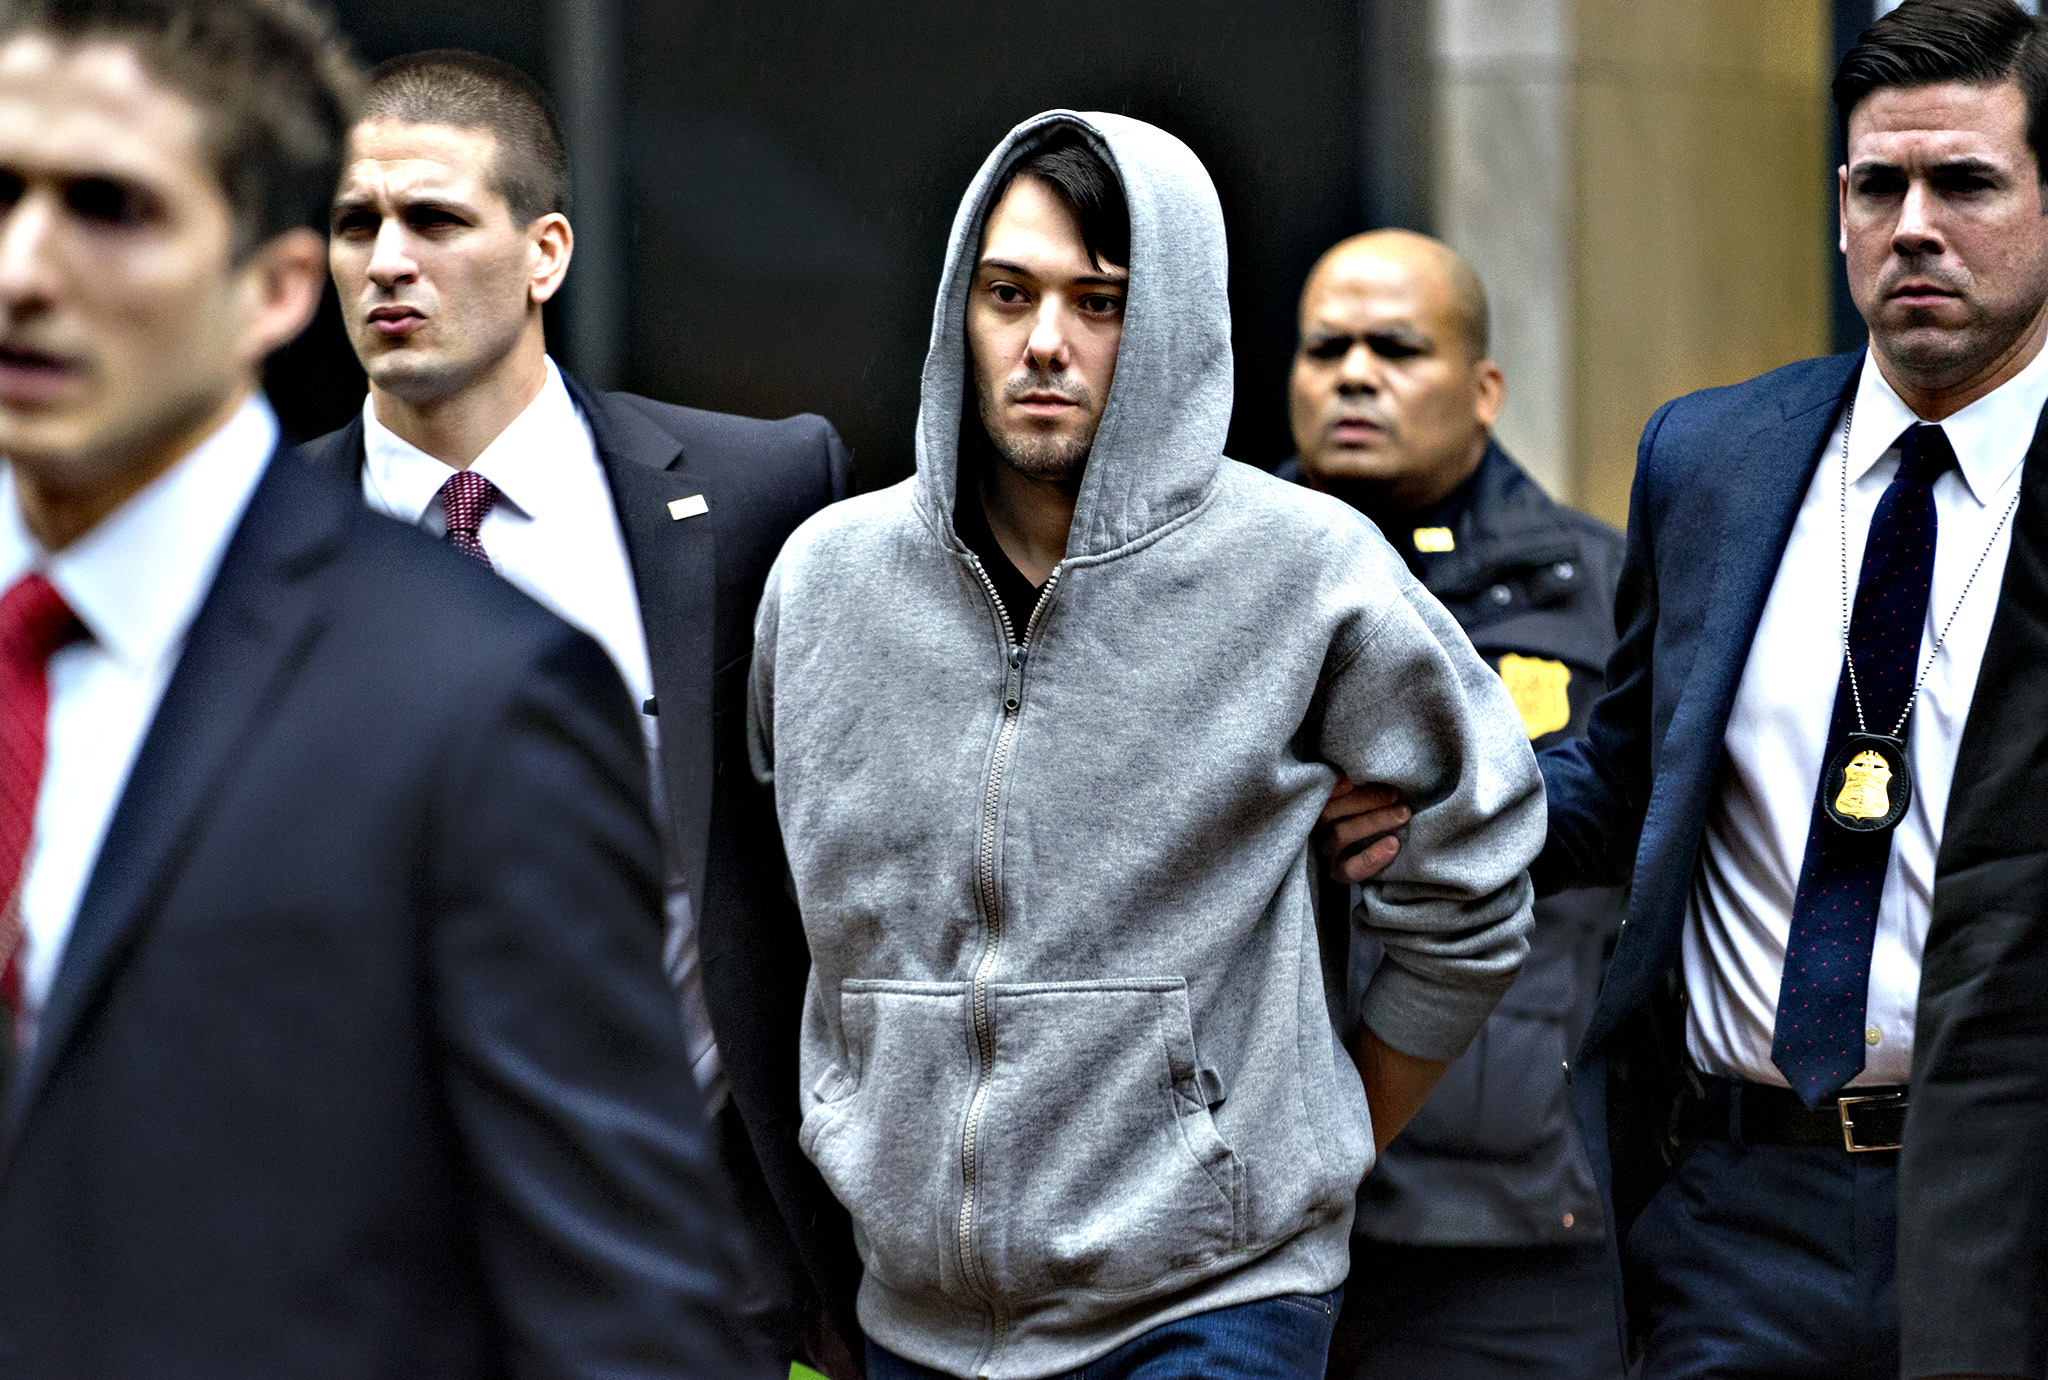 Martin Shkreli, the former hedge fund manager under fire for buying a pharmaceutical company and ratcheting up the price of a life-saving drug, is escorted by law enforcement agents in New York Thursday, Dec. 17, 2015, after being taken into custody following a securities probe. A seven-count indictment unsealed in Brooklyn federal court Thursday charged Shkreli with conspiracy to commit securities fraud, conspiracy to commit wire fraud and securities fraud.